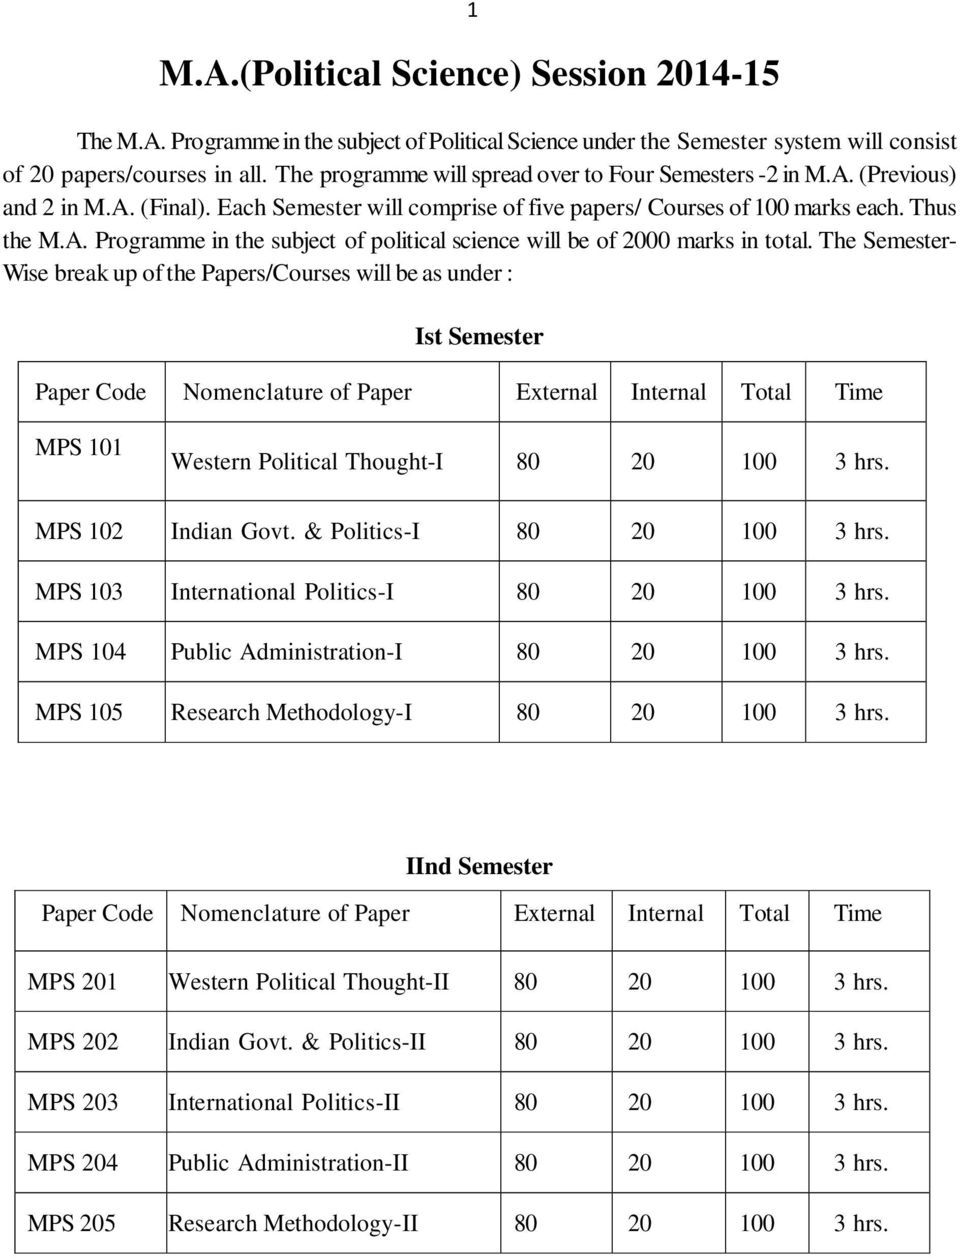 hills like white elephants essay outline Sample of scientific research proposal hills like white elephants analysis essay help writing dissertation proposal introduction writing services west midlands.